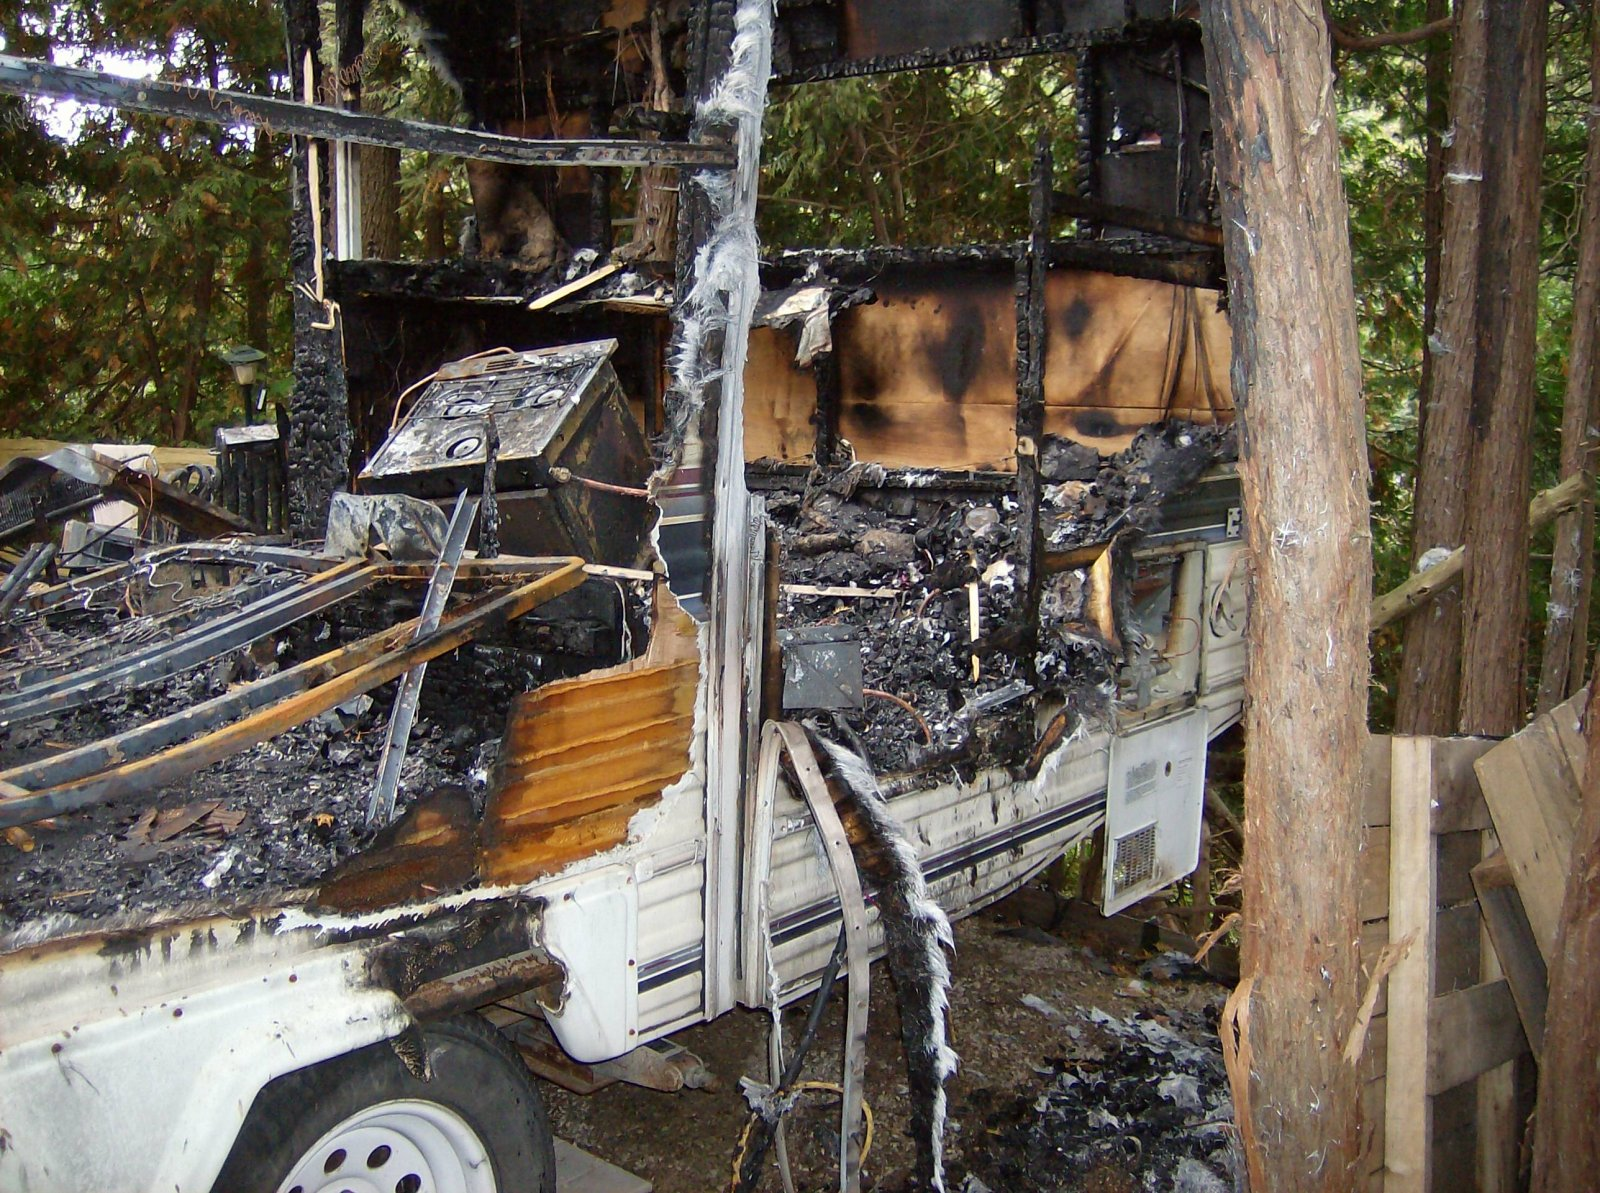 Click image for larger version  Name:Fire Damaged Trailer 011.jpg Views:93 Size:511.9 KB ID:112195